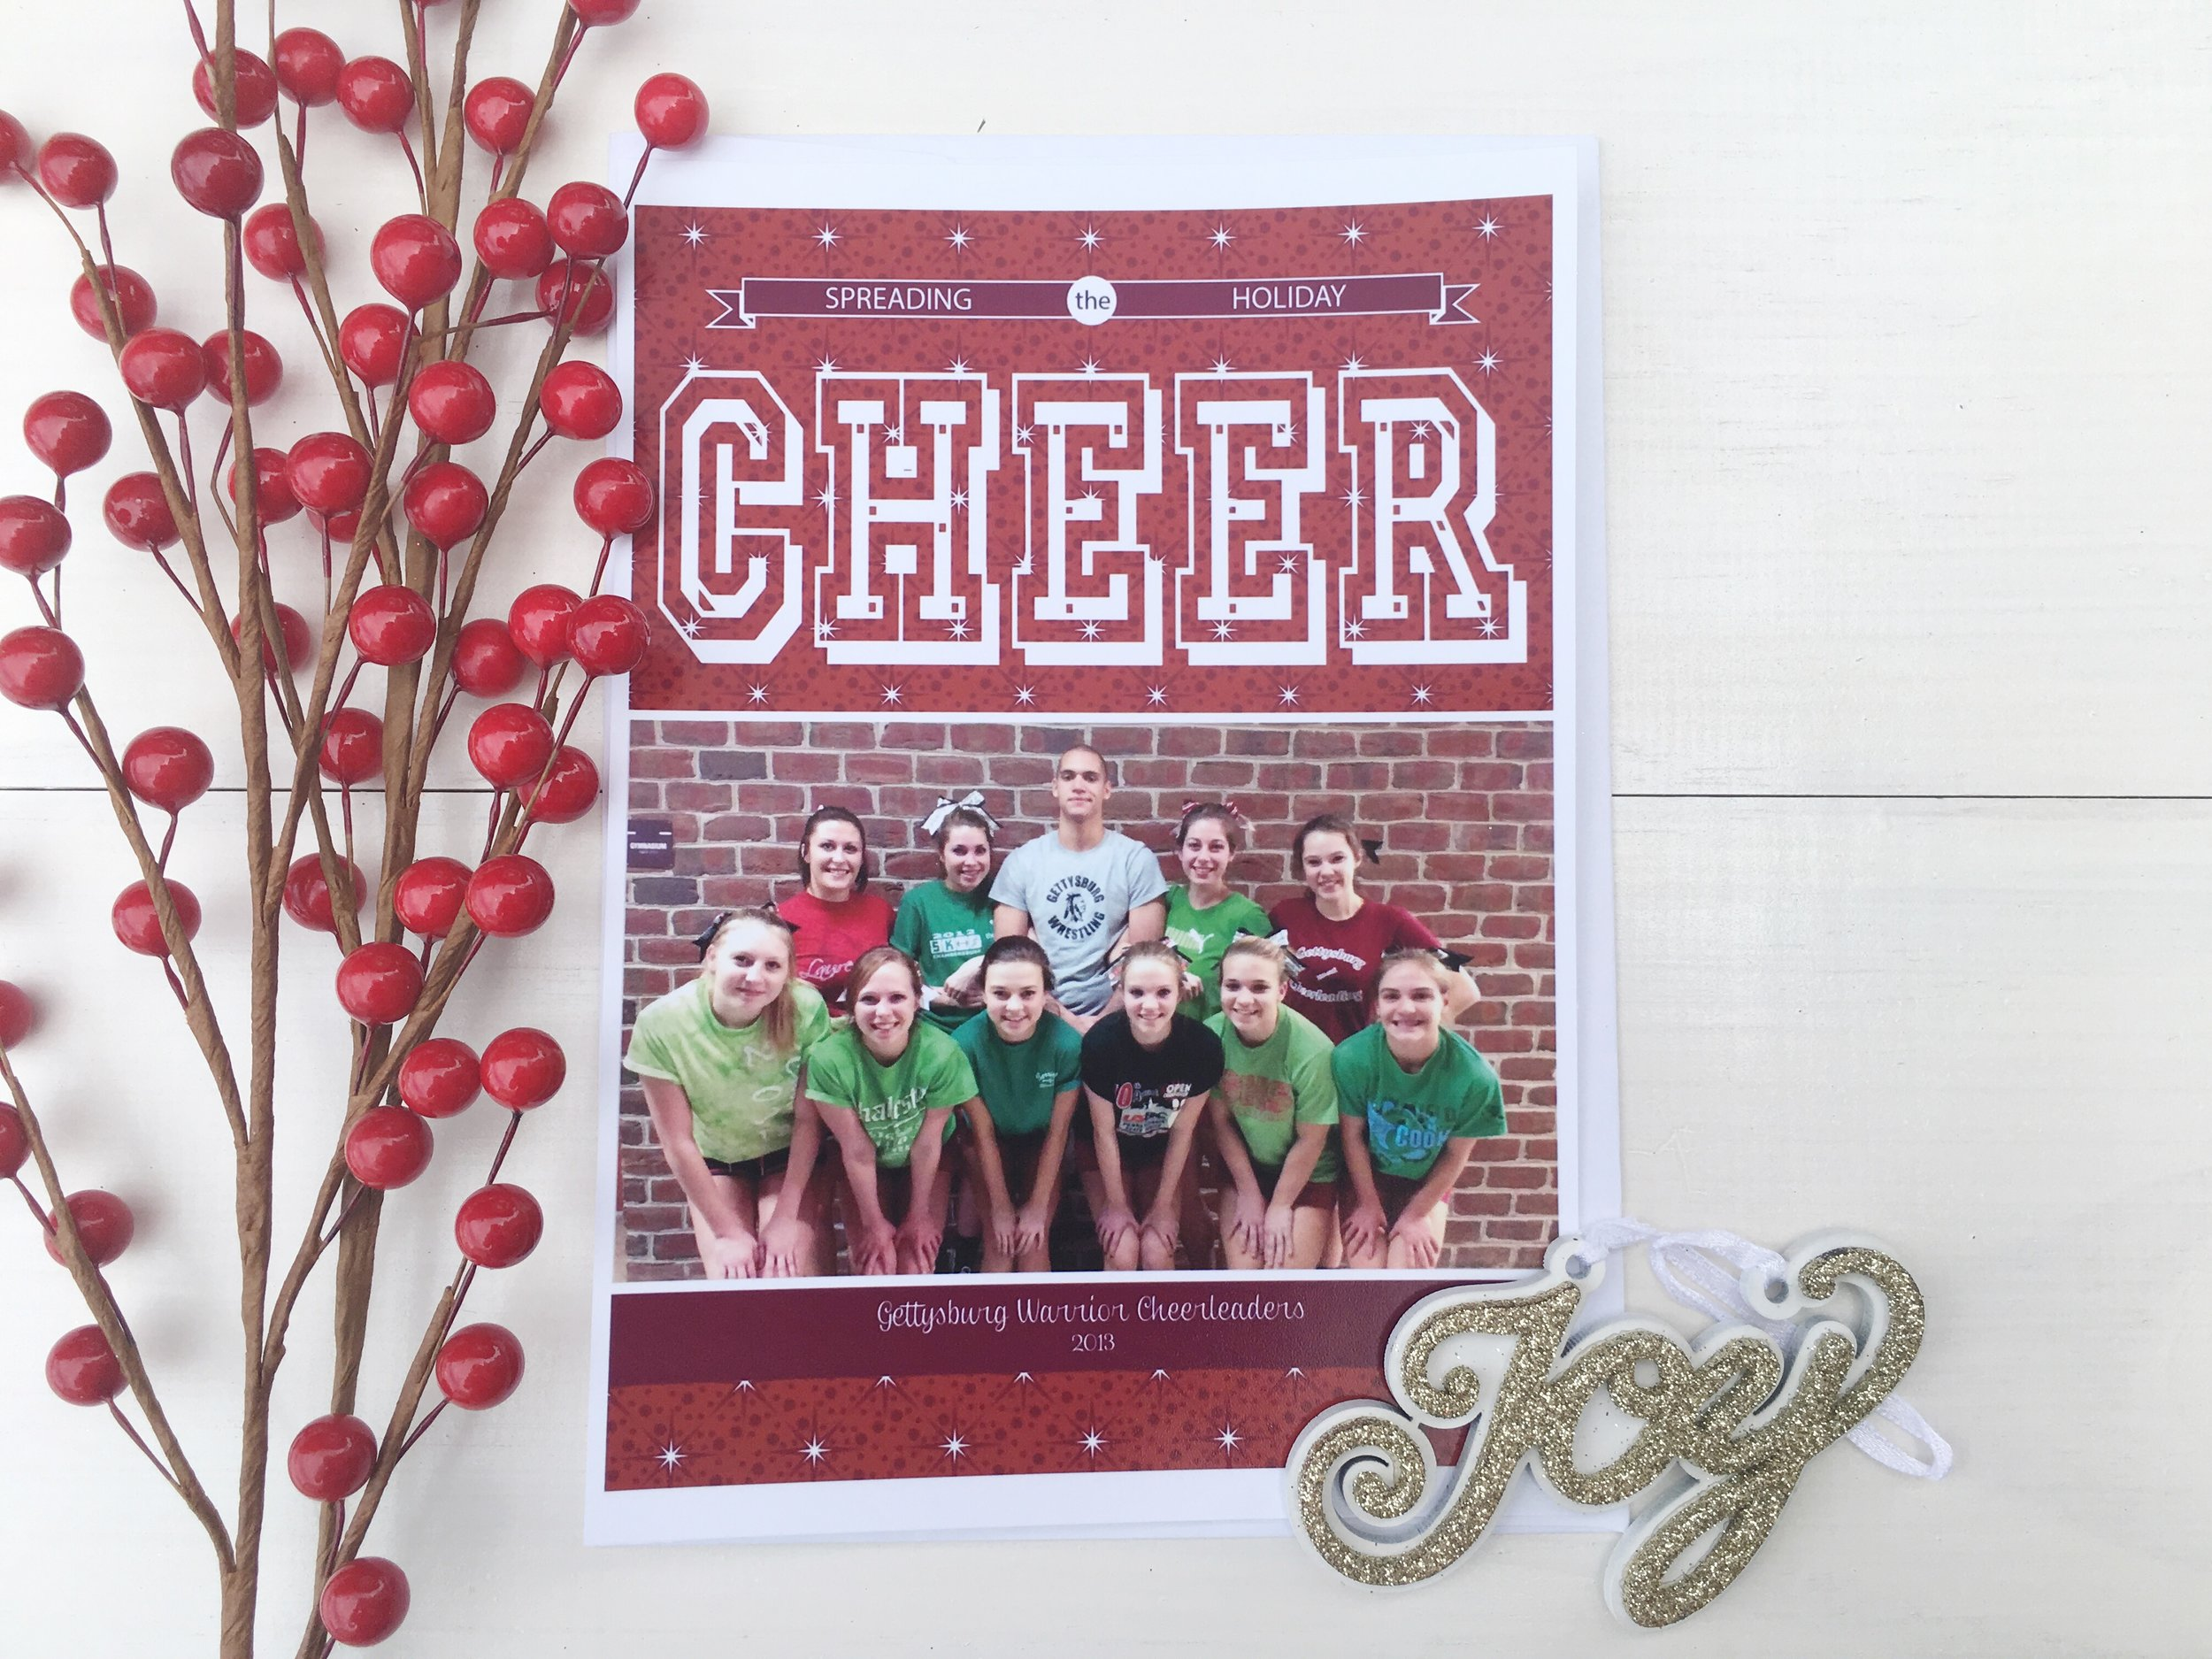 jsd sending cheer holiday card.jpg